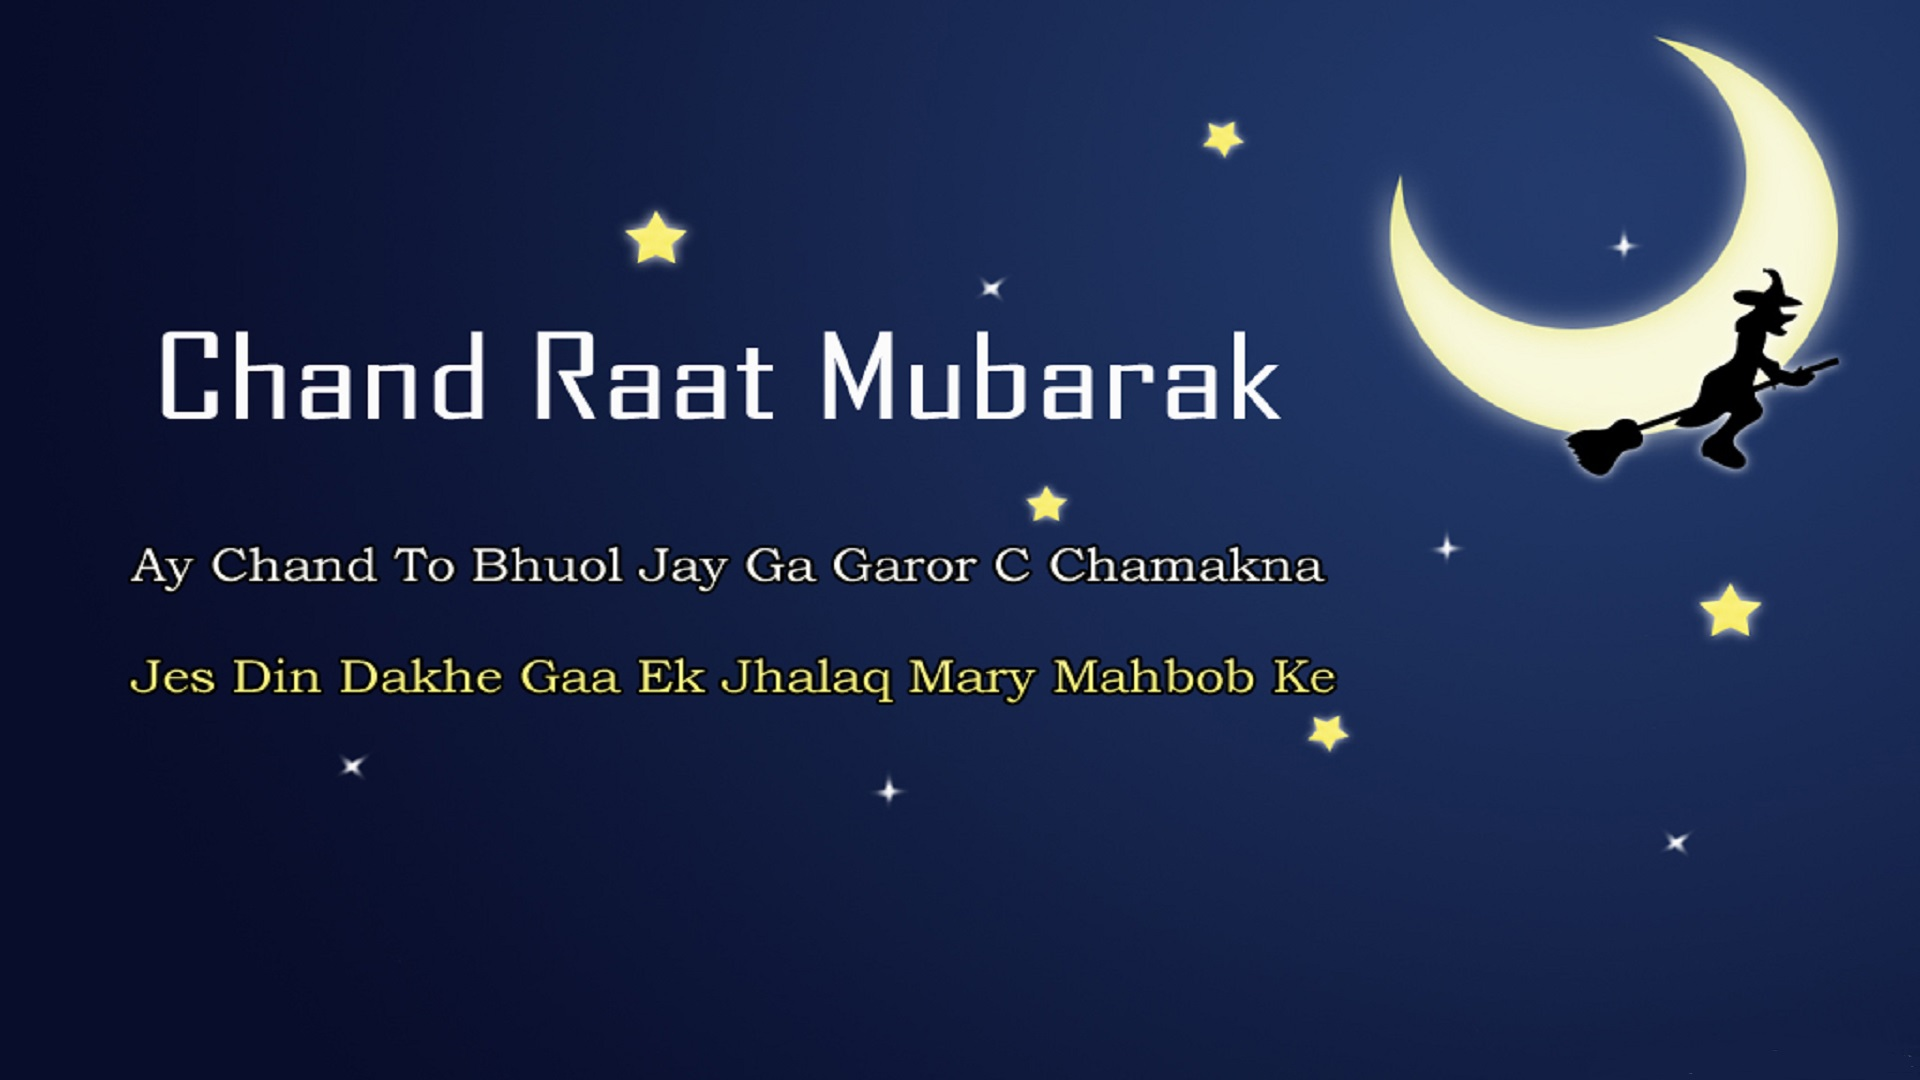 Chand Raat Mubarak Free Hd Wallpapers For Desktop on funny status quotes